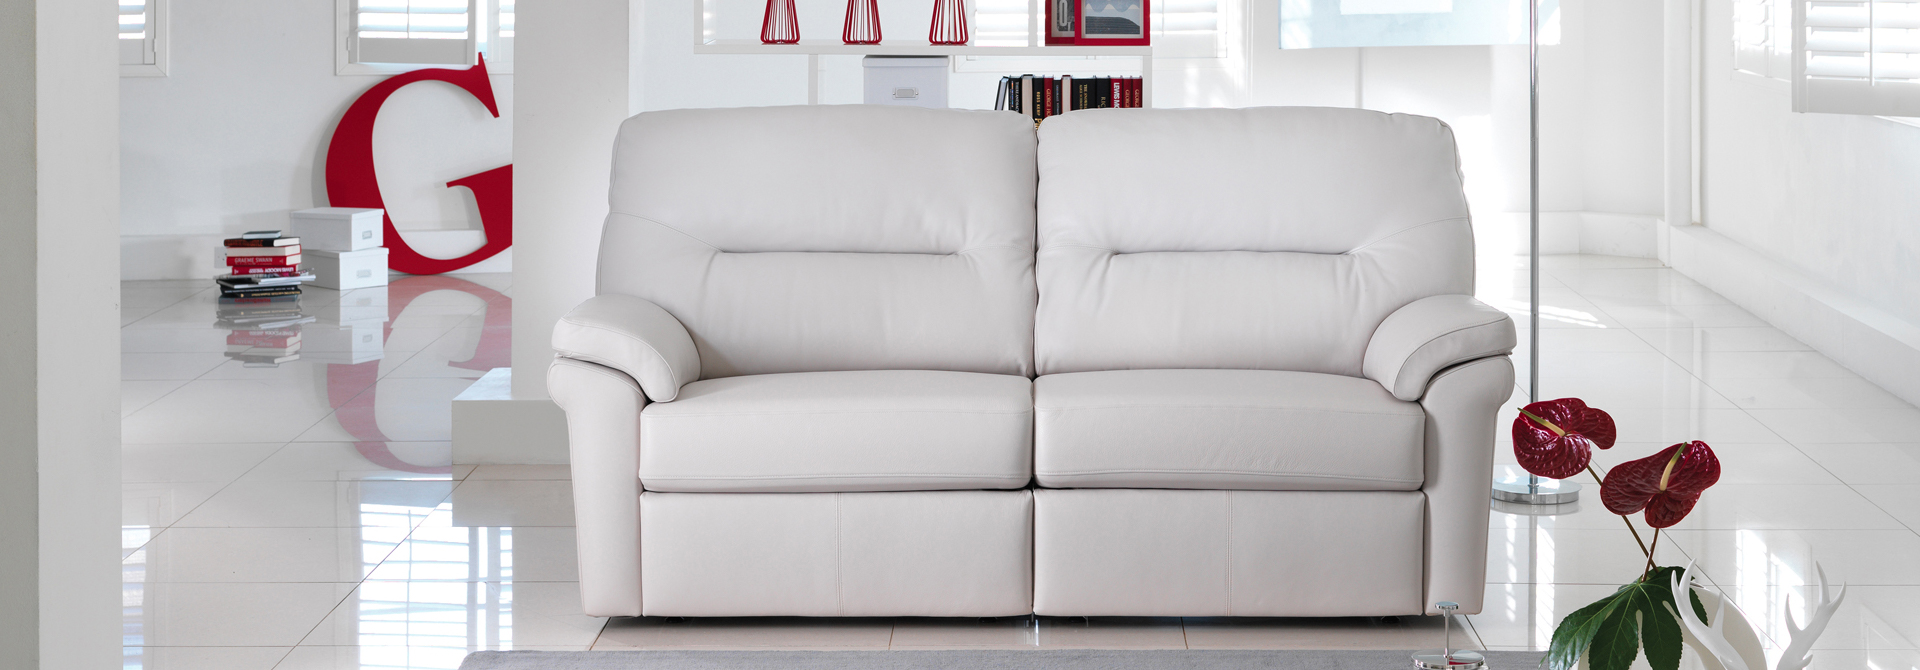 Shop 3 Seater Leather Sofas At Barkers Furniture G W